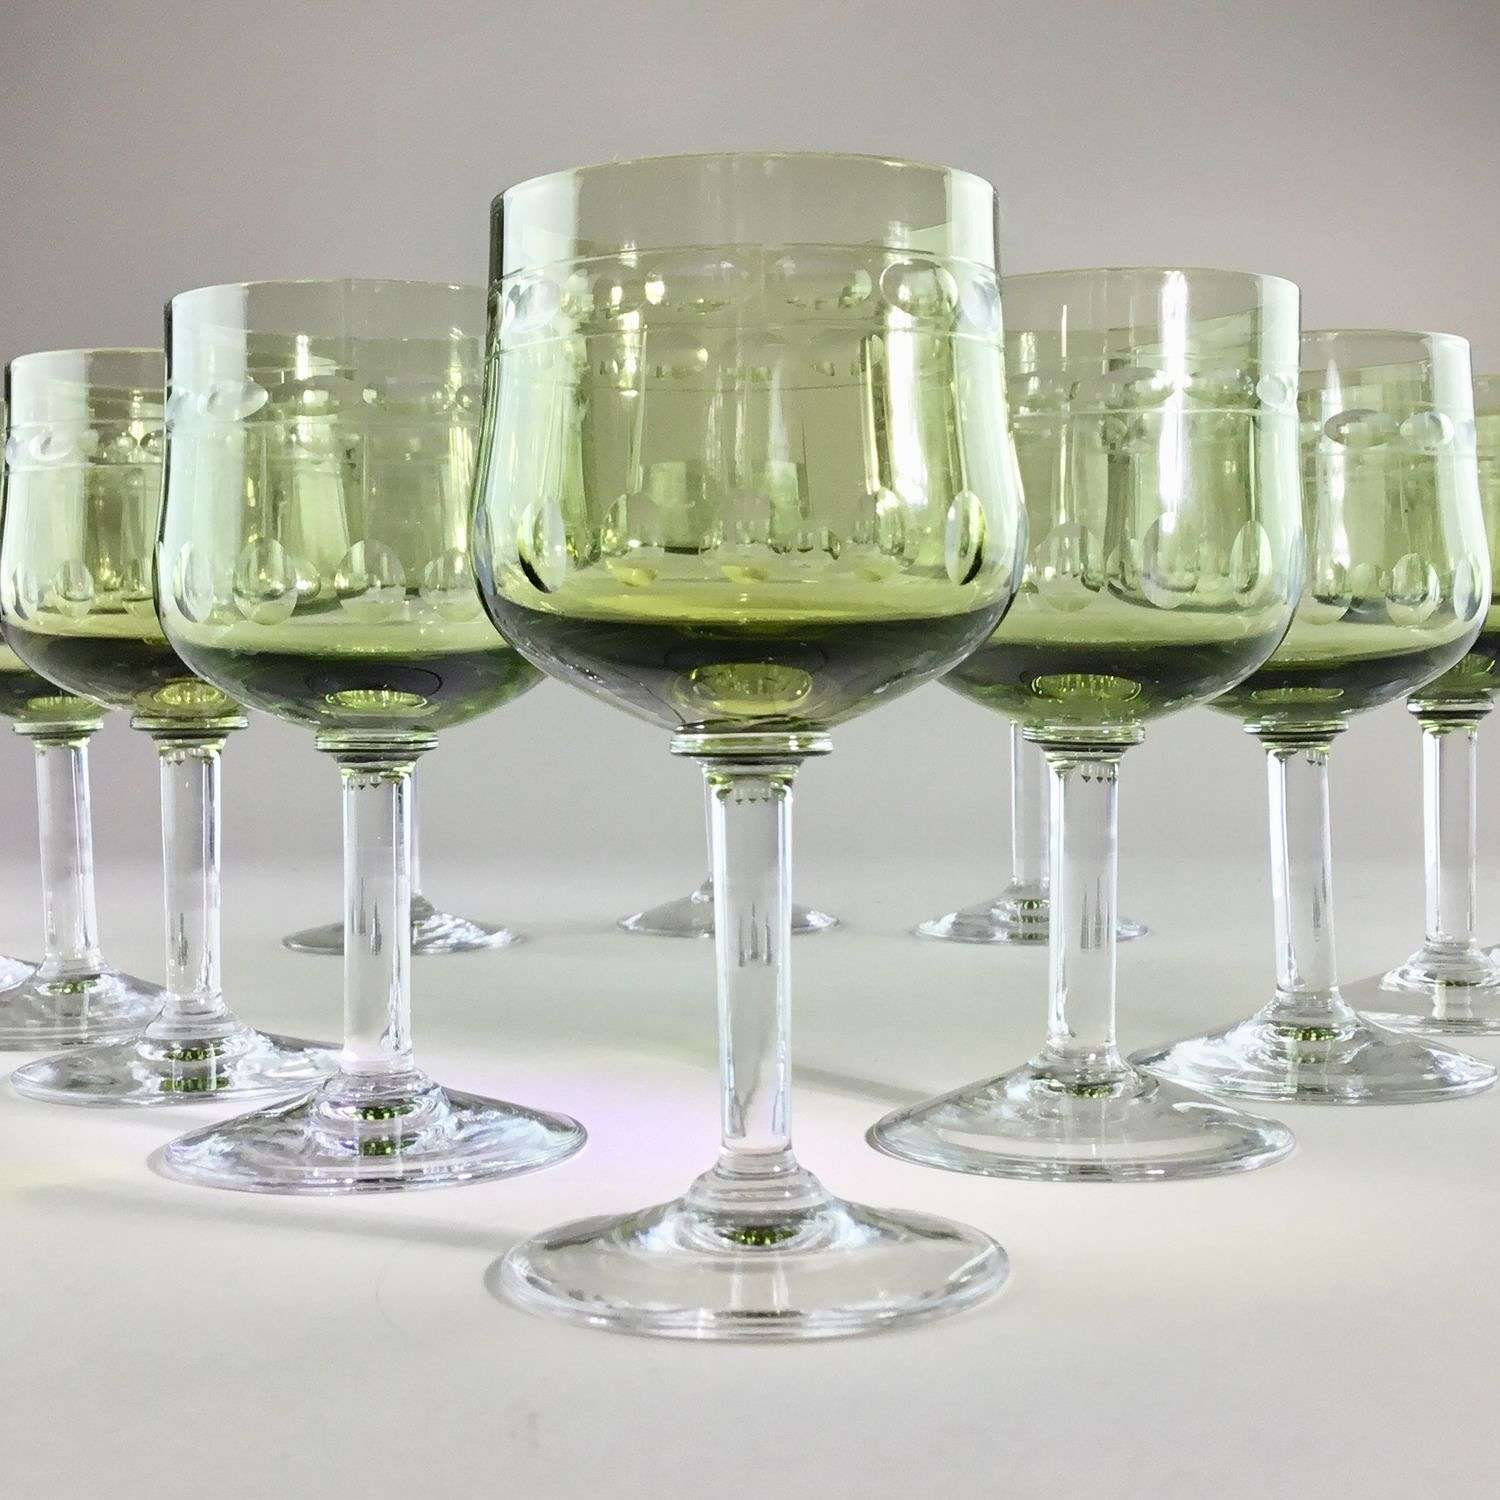 Ten pretty green tulip shaped glasses by Val Saint Lambert